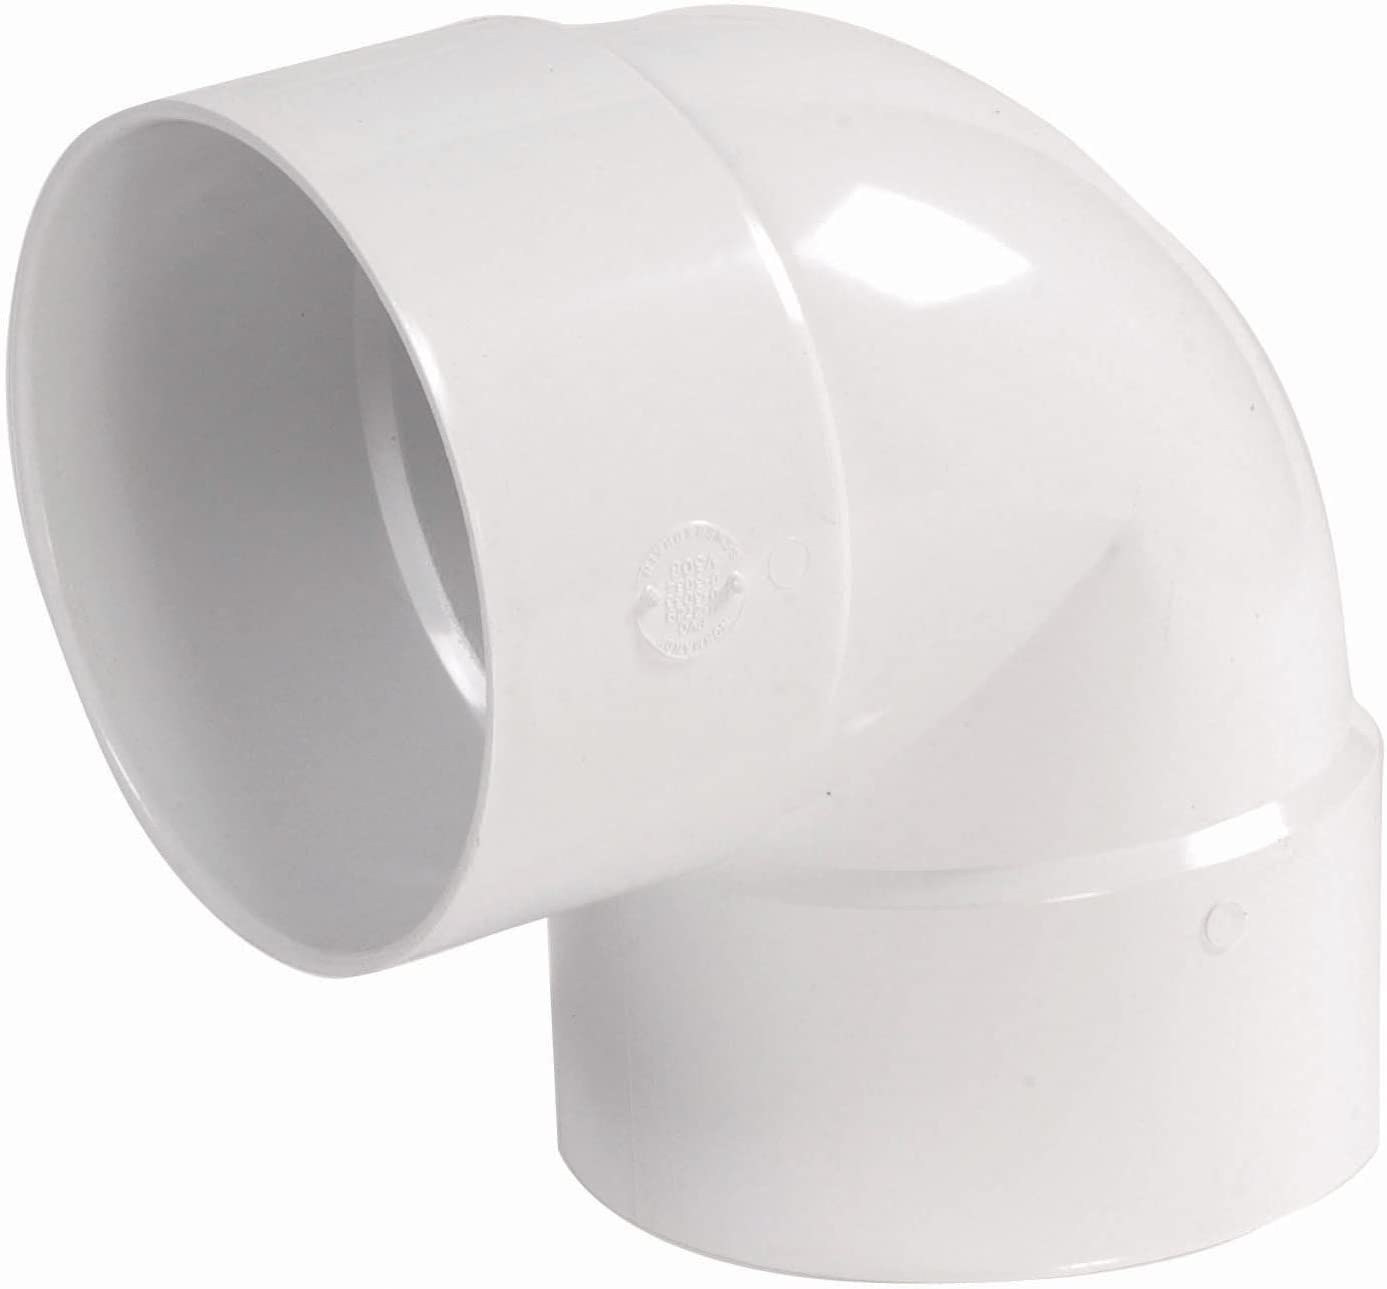 NDS 6P02 PVC 90-Degree Elbow Solvent Weld Fitting, 6-Inch, White